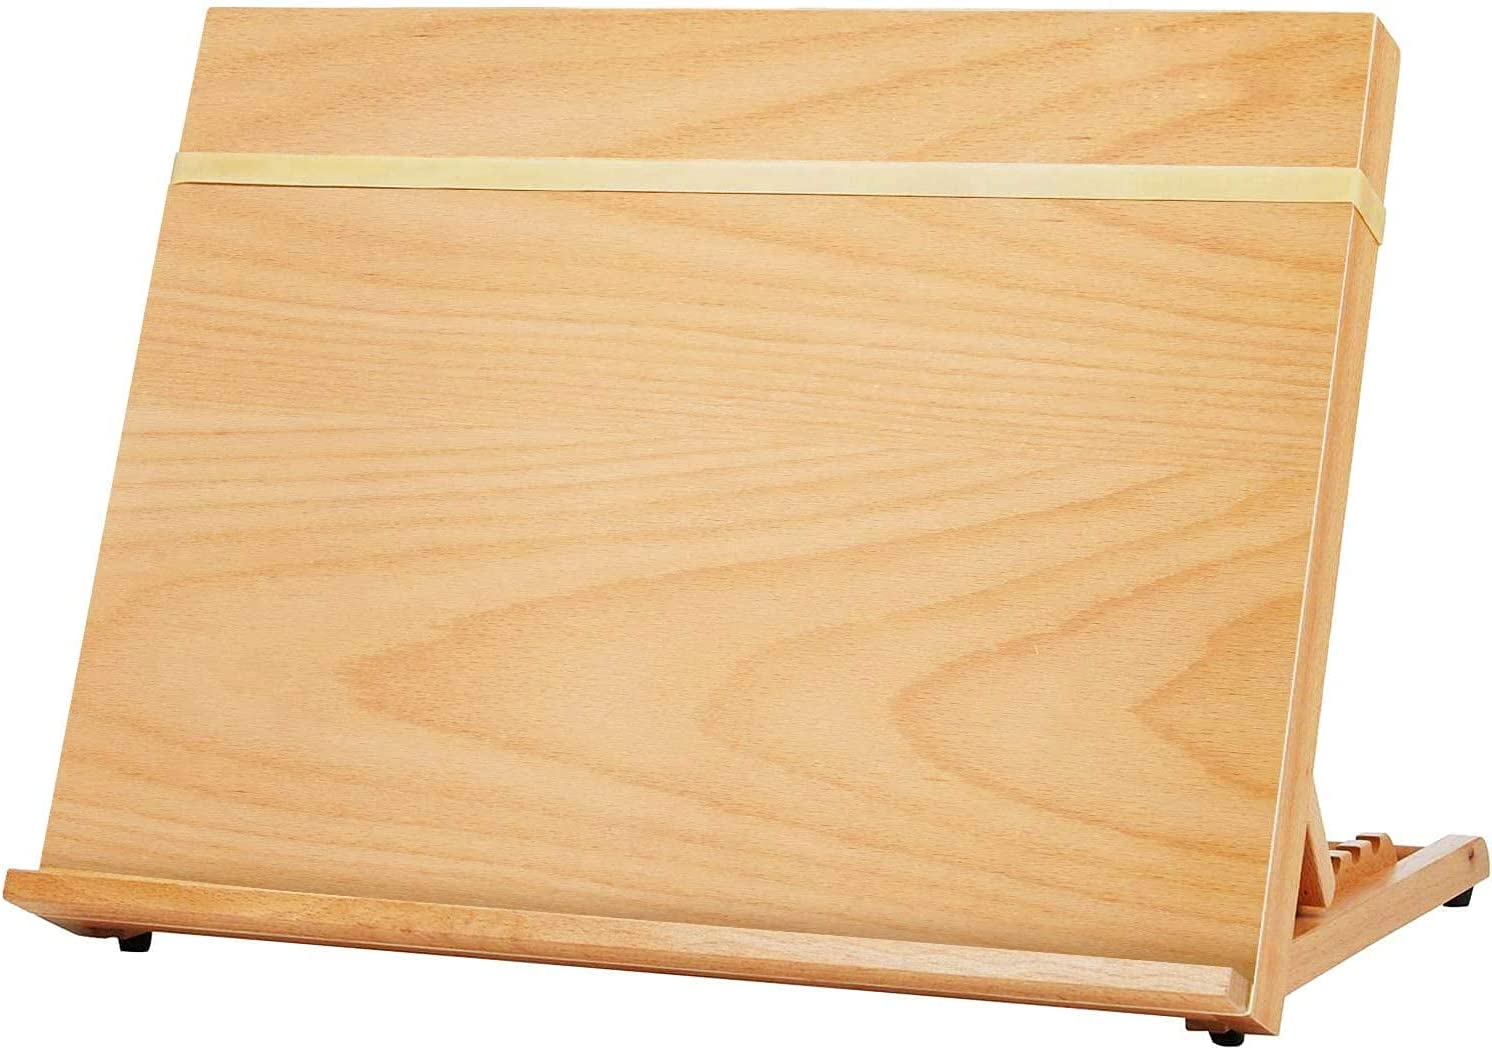 Max 77% OFF Lusong Drawing Board Table Top Easel shipfree Portable Woode